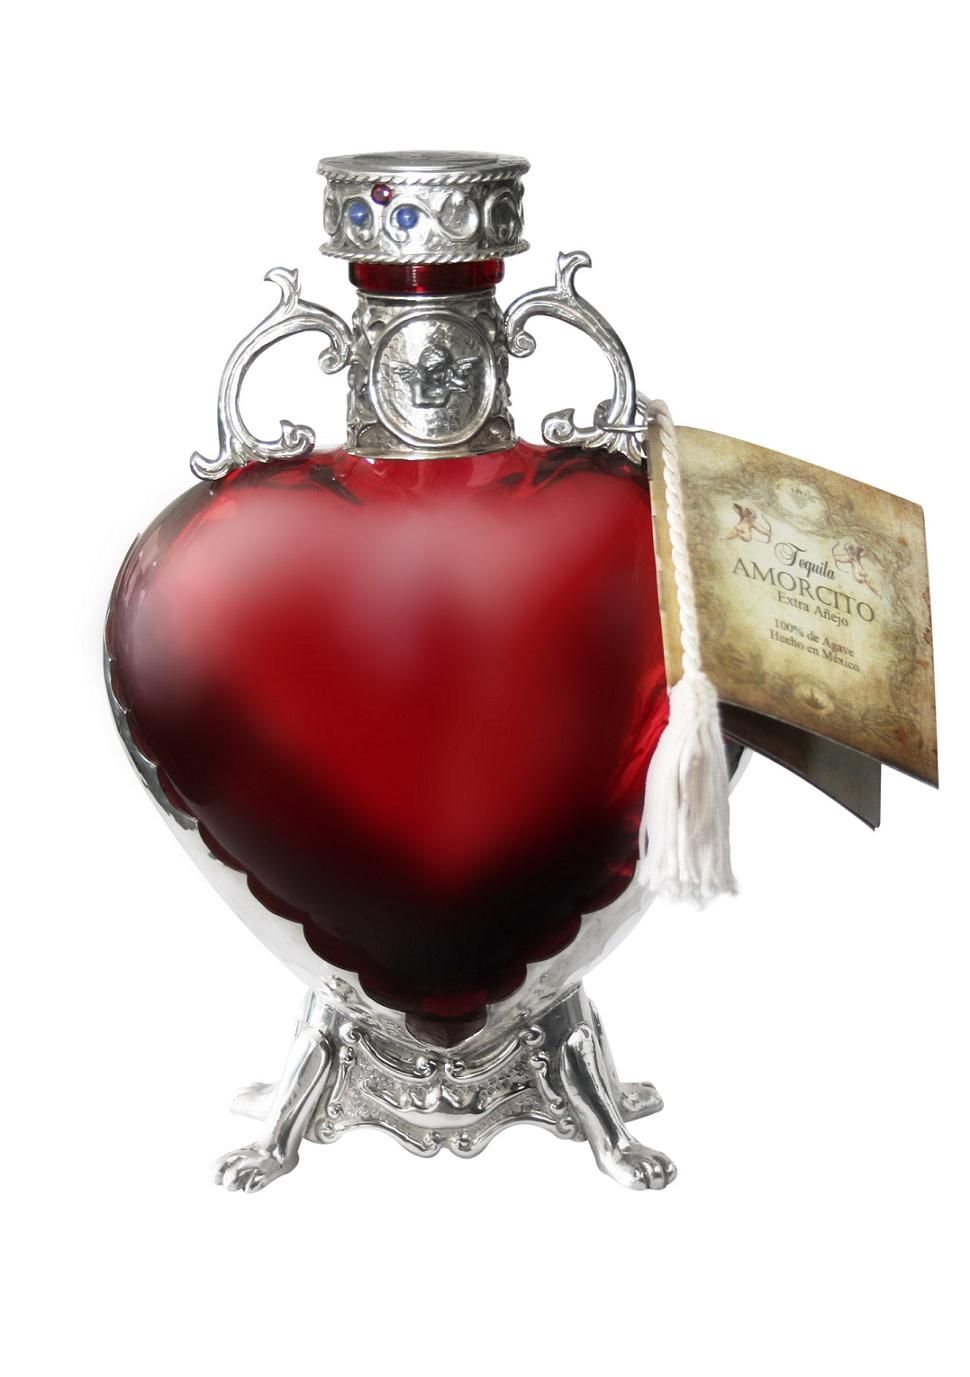 Corazon Tequila Google Search Tequila Bottles Alcohol Bottles Whisky Bottle